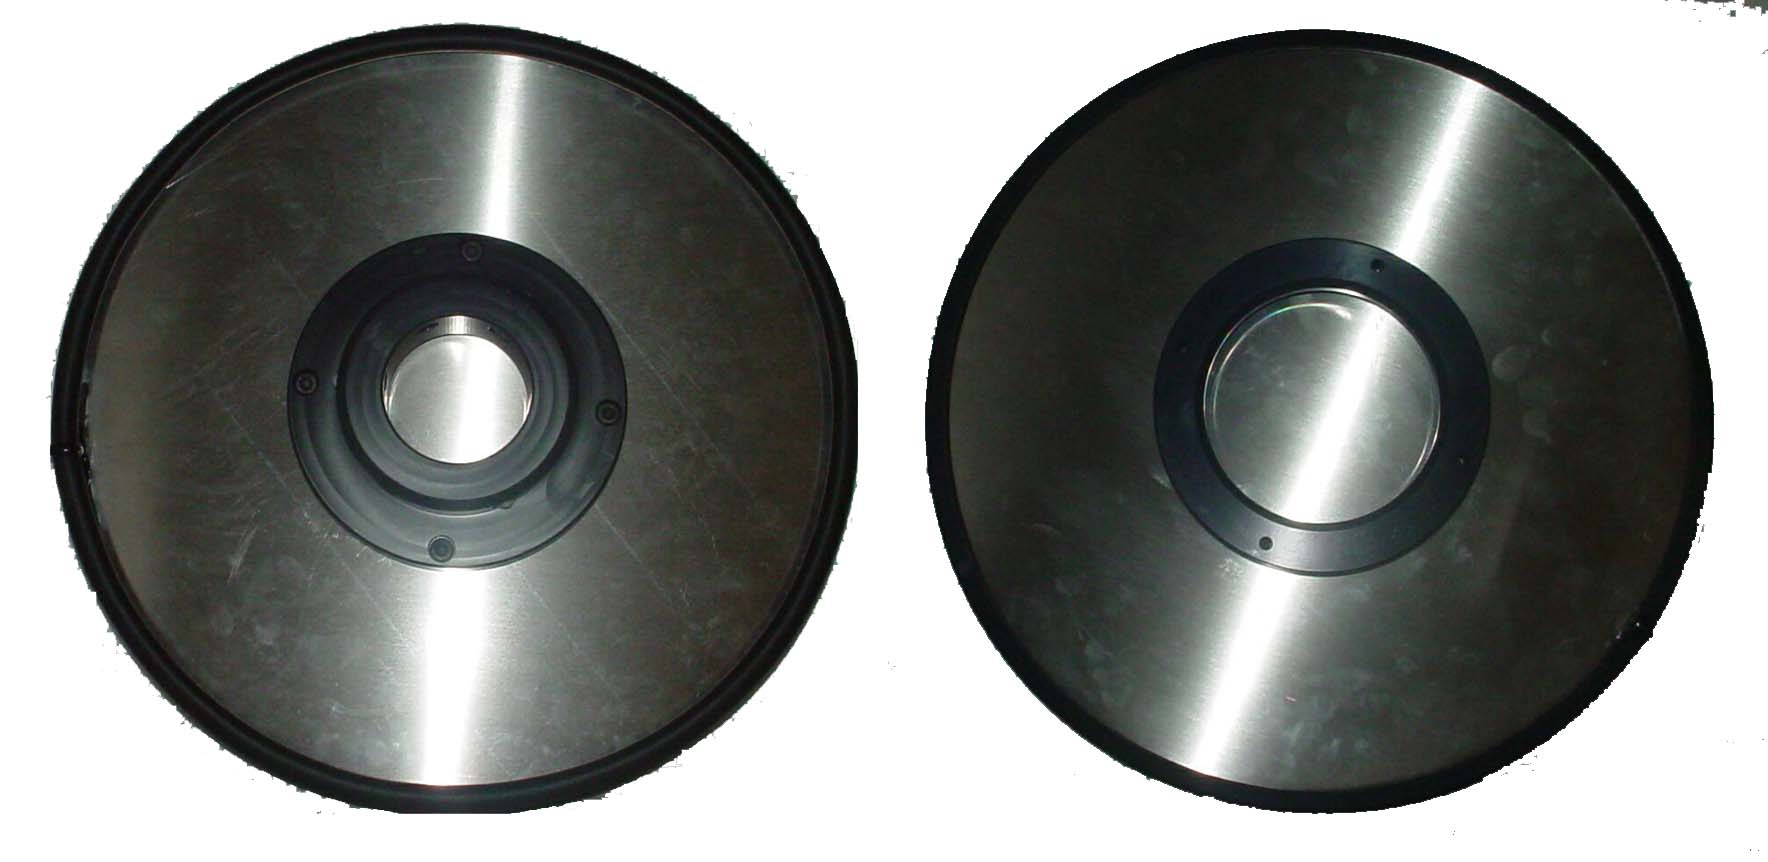 QC-200 Series Stand-alone Dust Cover (Top & Bottom shown)